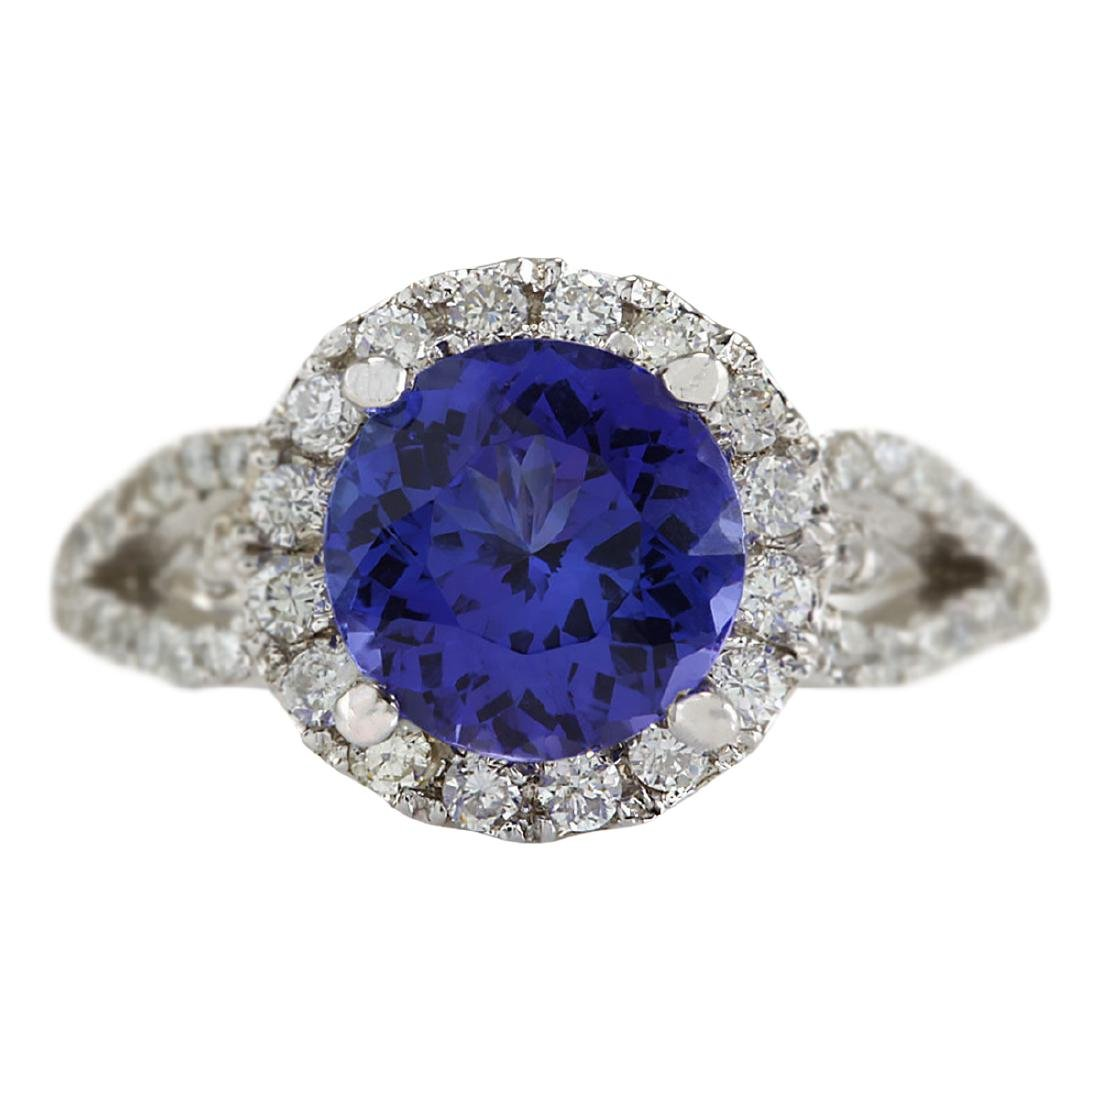 3.49 CTW Natural Blue Tanzanite And Diamond Ring In18K